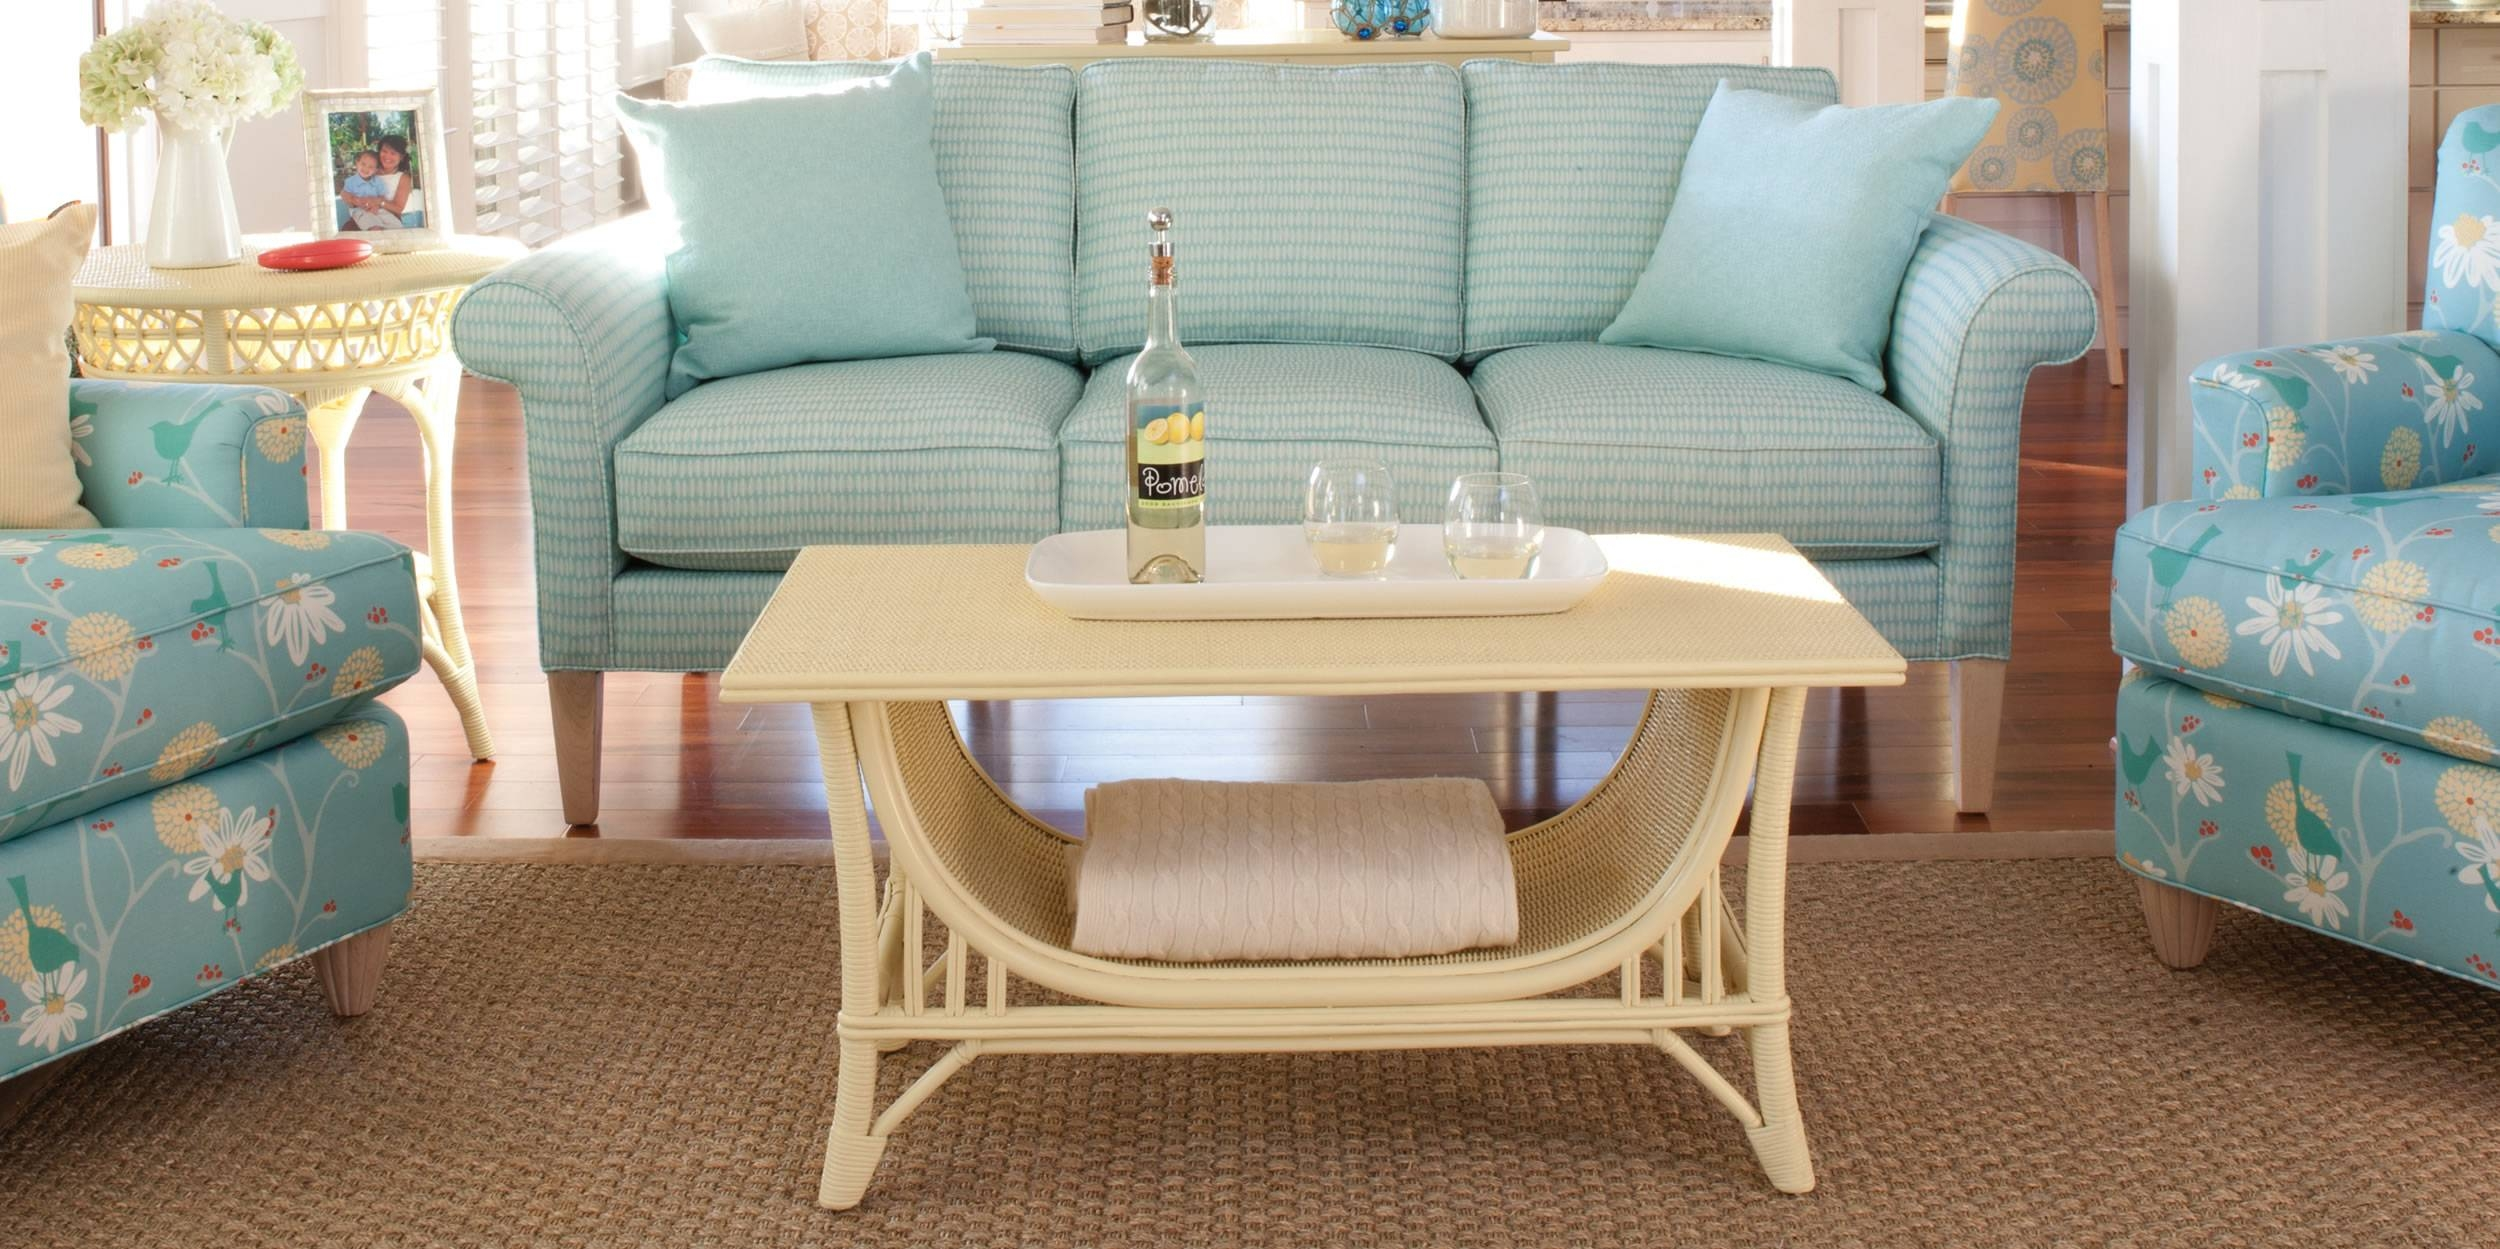 Cottage Style Sofas And Chairs | Tehranmix Decoration In Cottage Style Sofas And Chairs (View 8 of 15)